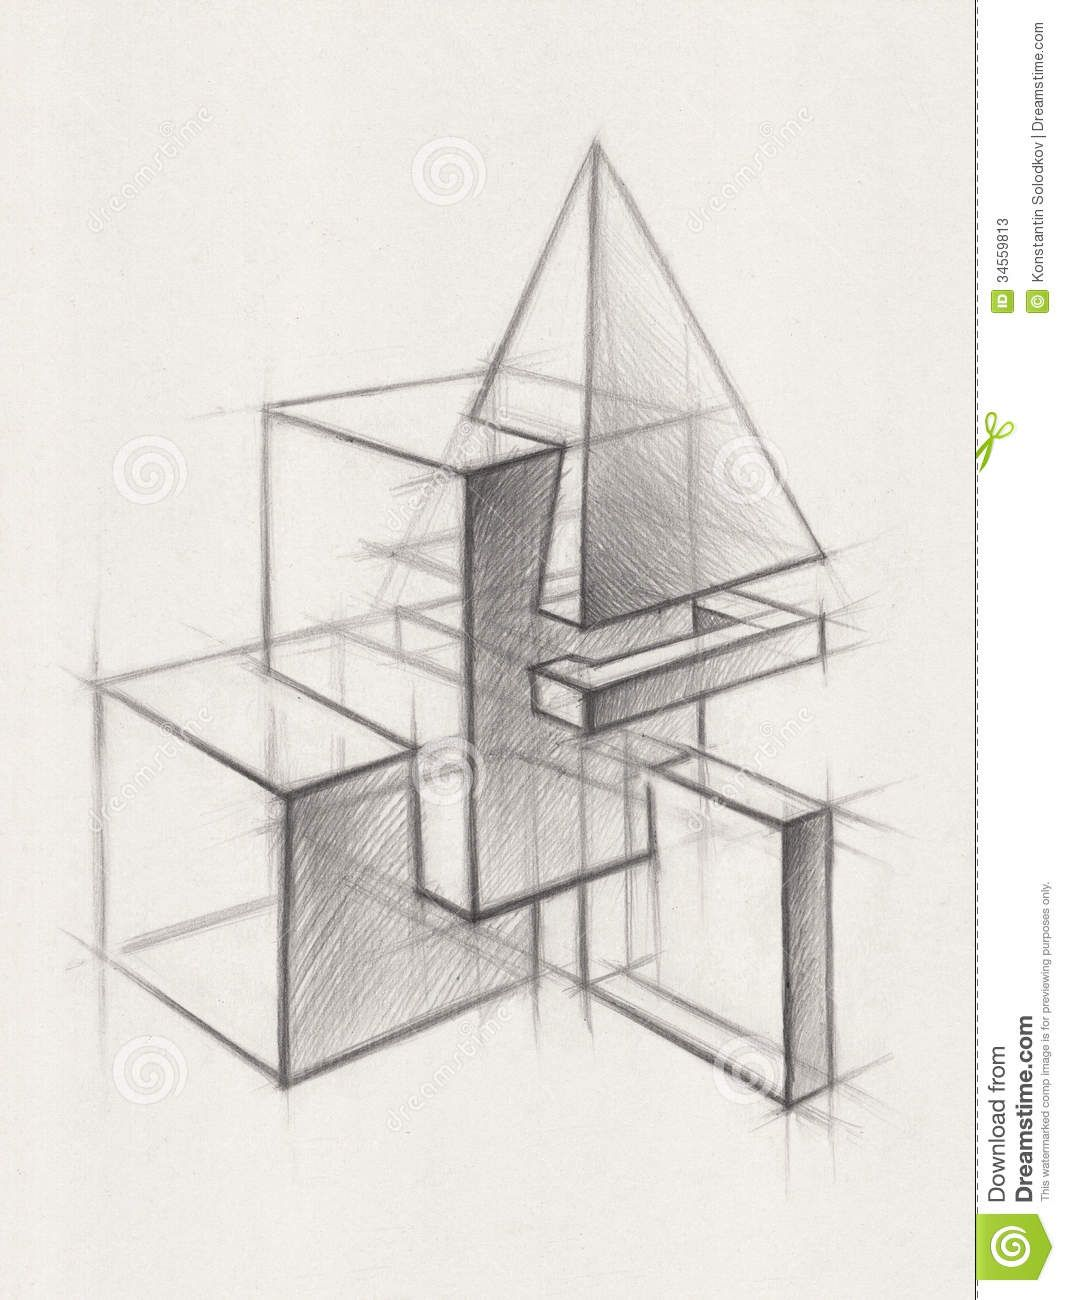 geometric form drawing - google search | drawing in 2018 | pinterest